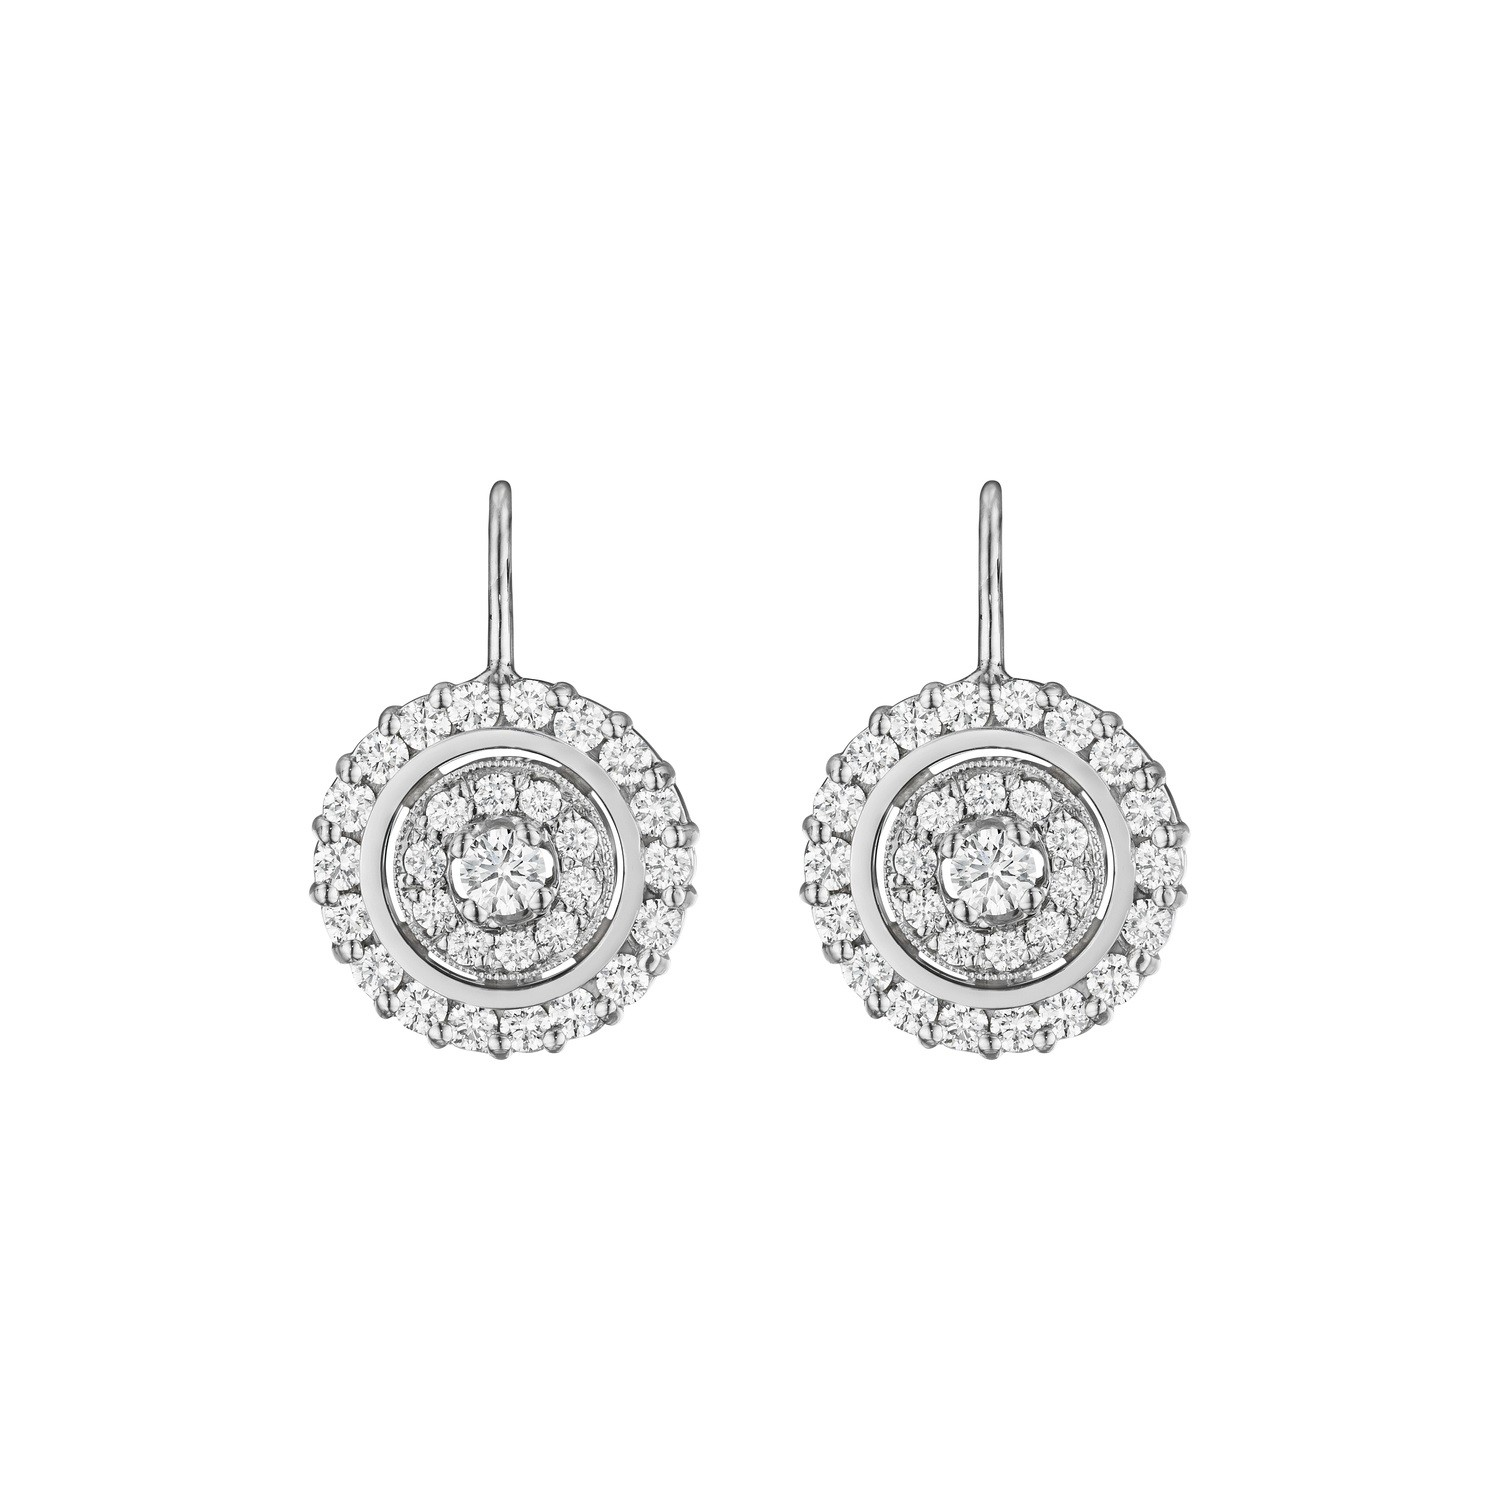 Round Shaped Prong Earrings